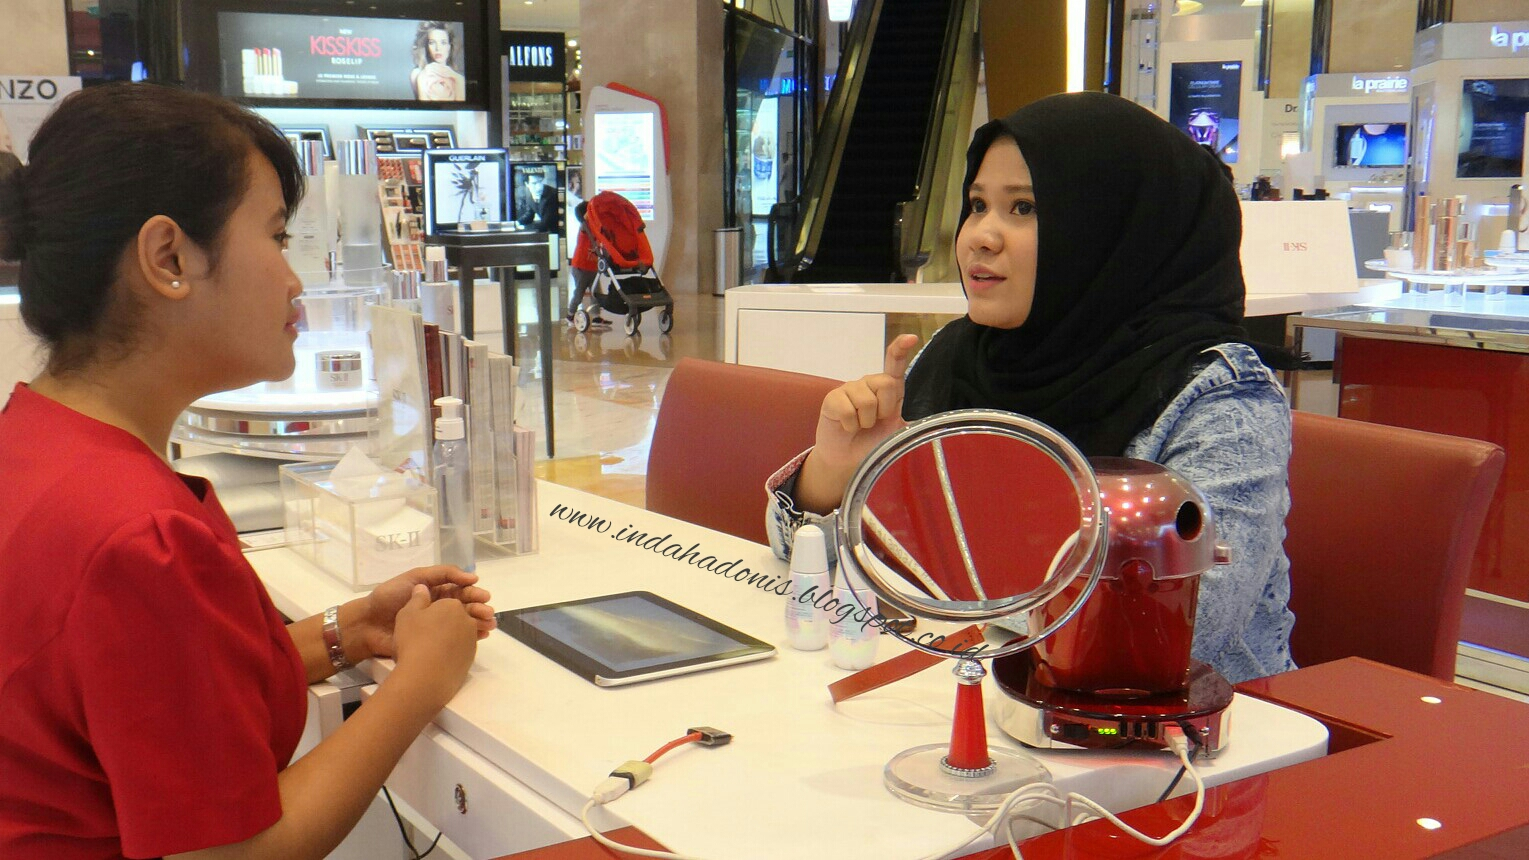 EVENT PENGALAMAN SK II MAGIC RING TEST INDONESIA